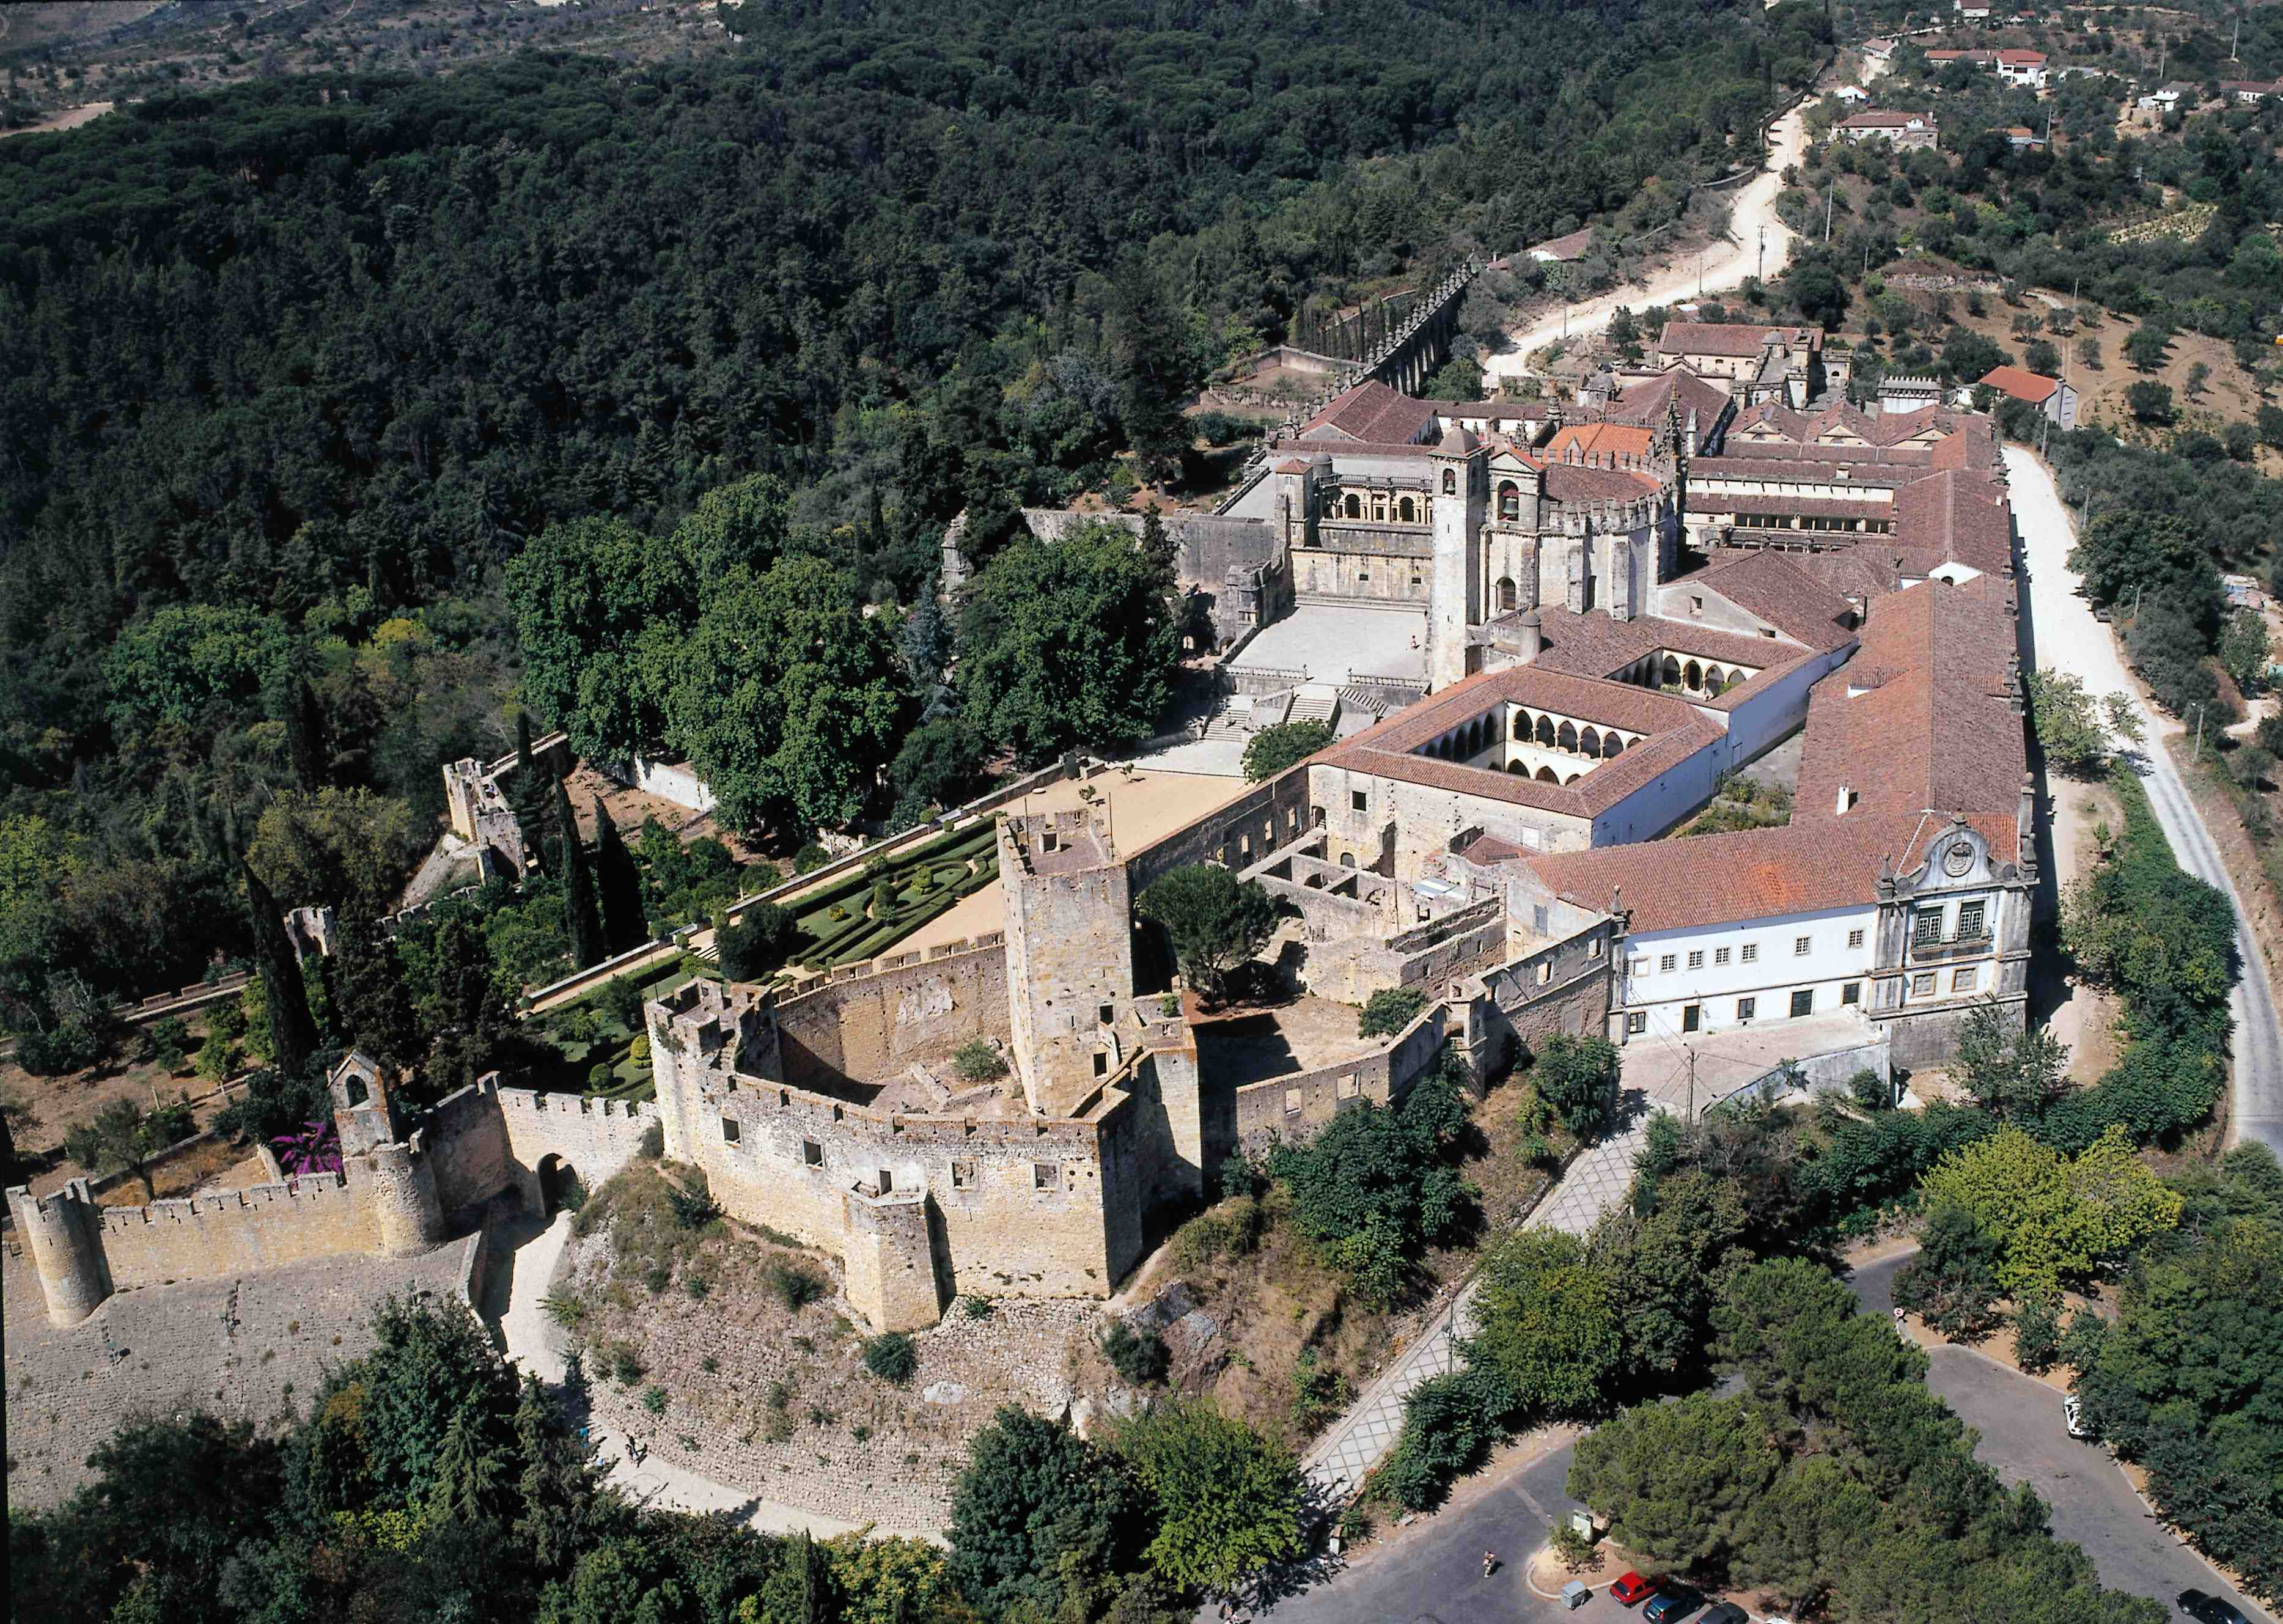 Templar Castle and the Convent of Christ